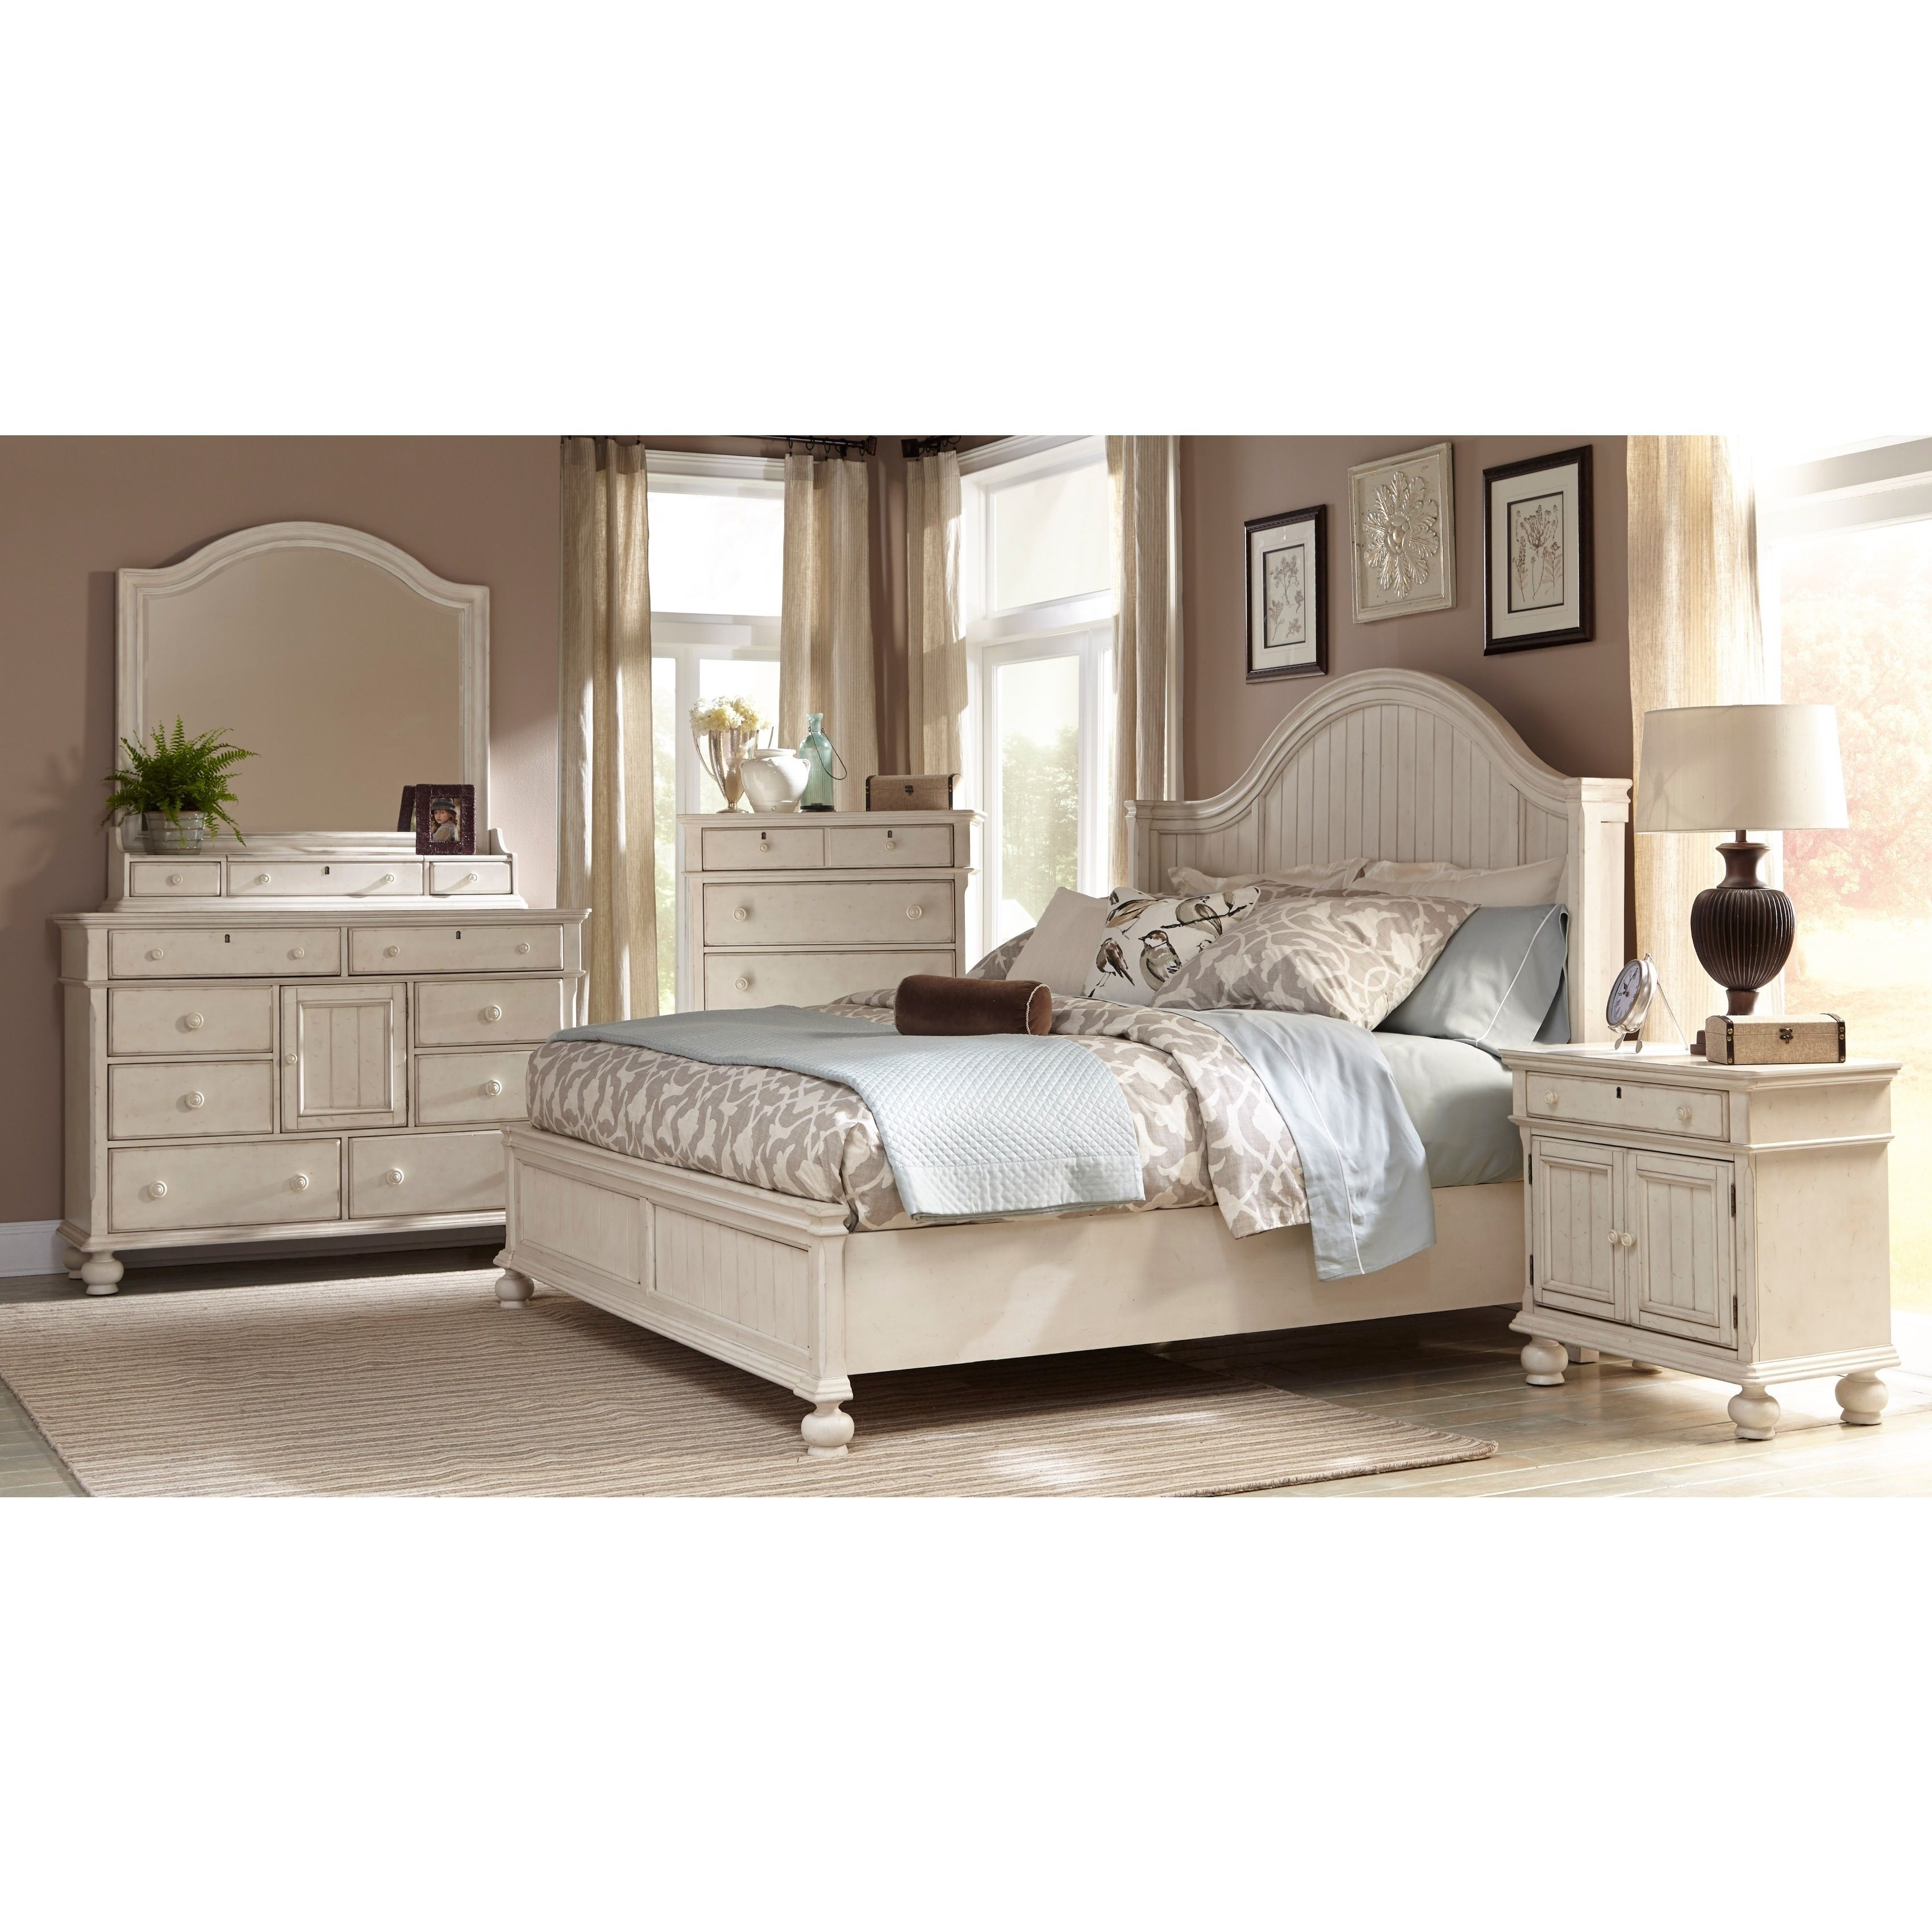 Laguna Antique White Panel Bed 6-piece Bedroom Set by ...